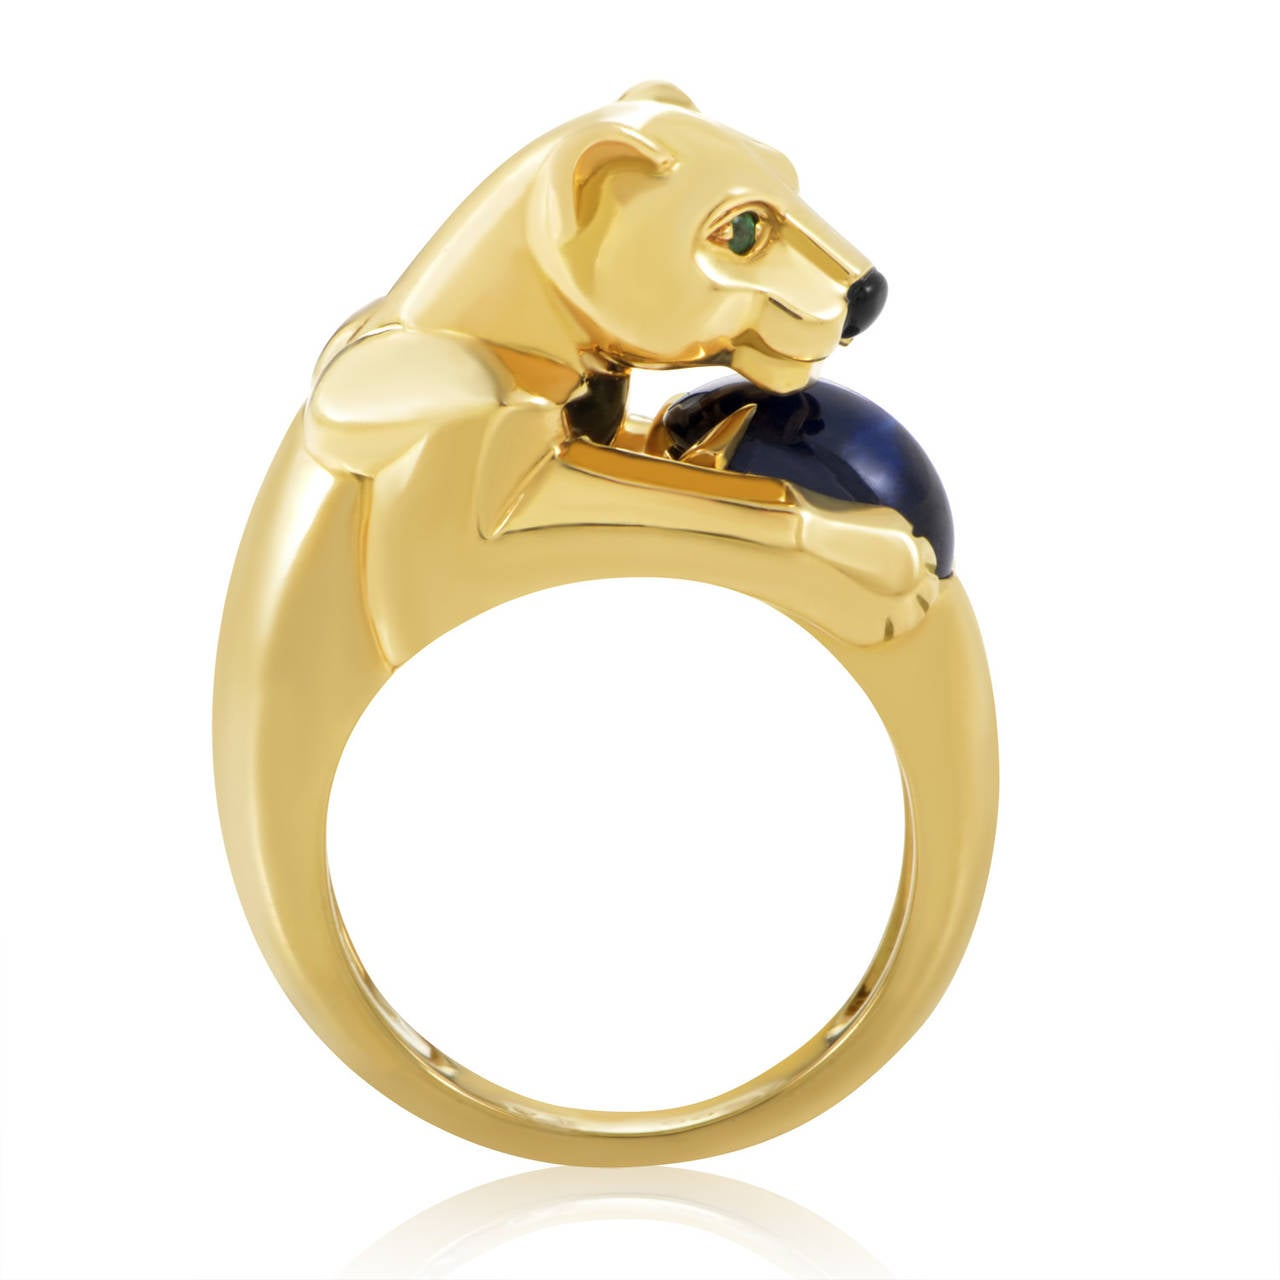 A brilliant blue sapphire is the hallmark of this dazzling creation from Cartier's Panthere collection. The ring is made of 18K yellow gold and boasts a panther-shaped motif with green emerald eyes, an onyx nose, and a sapphire stone clutched in its